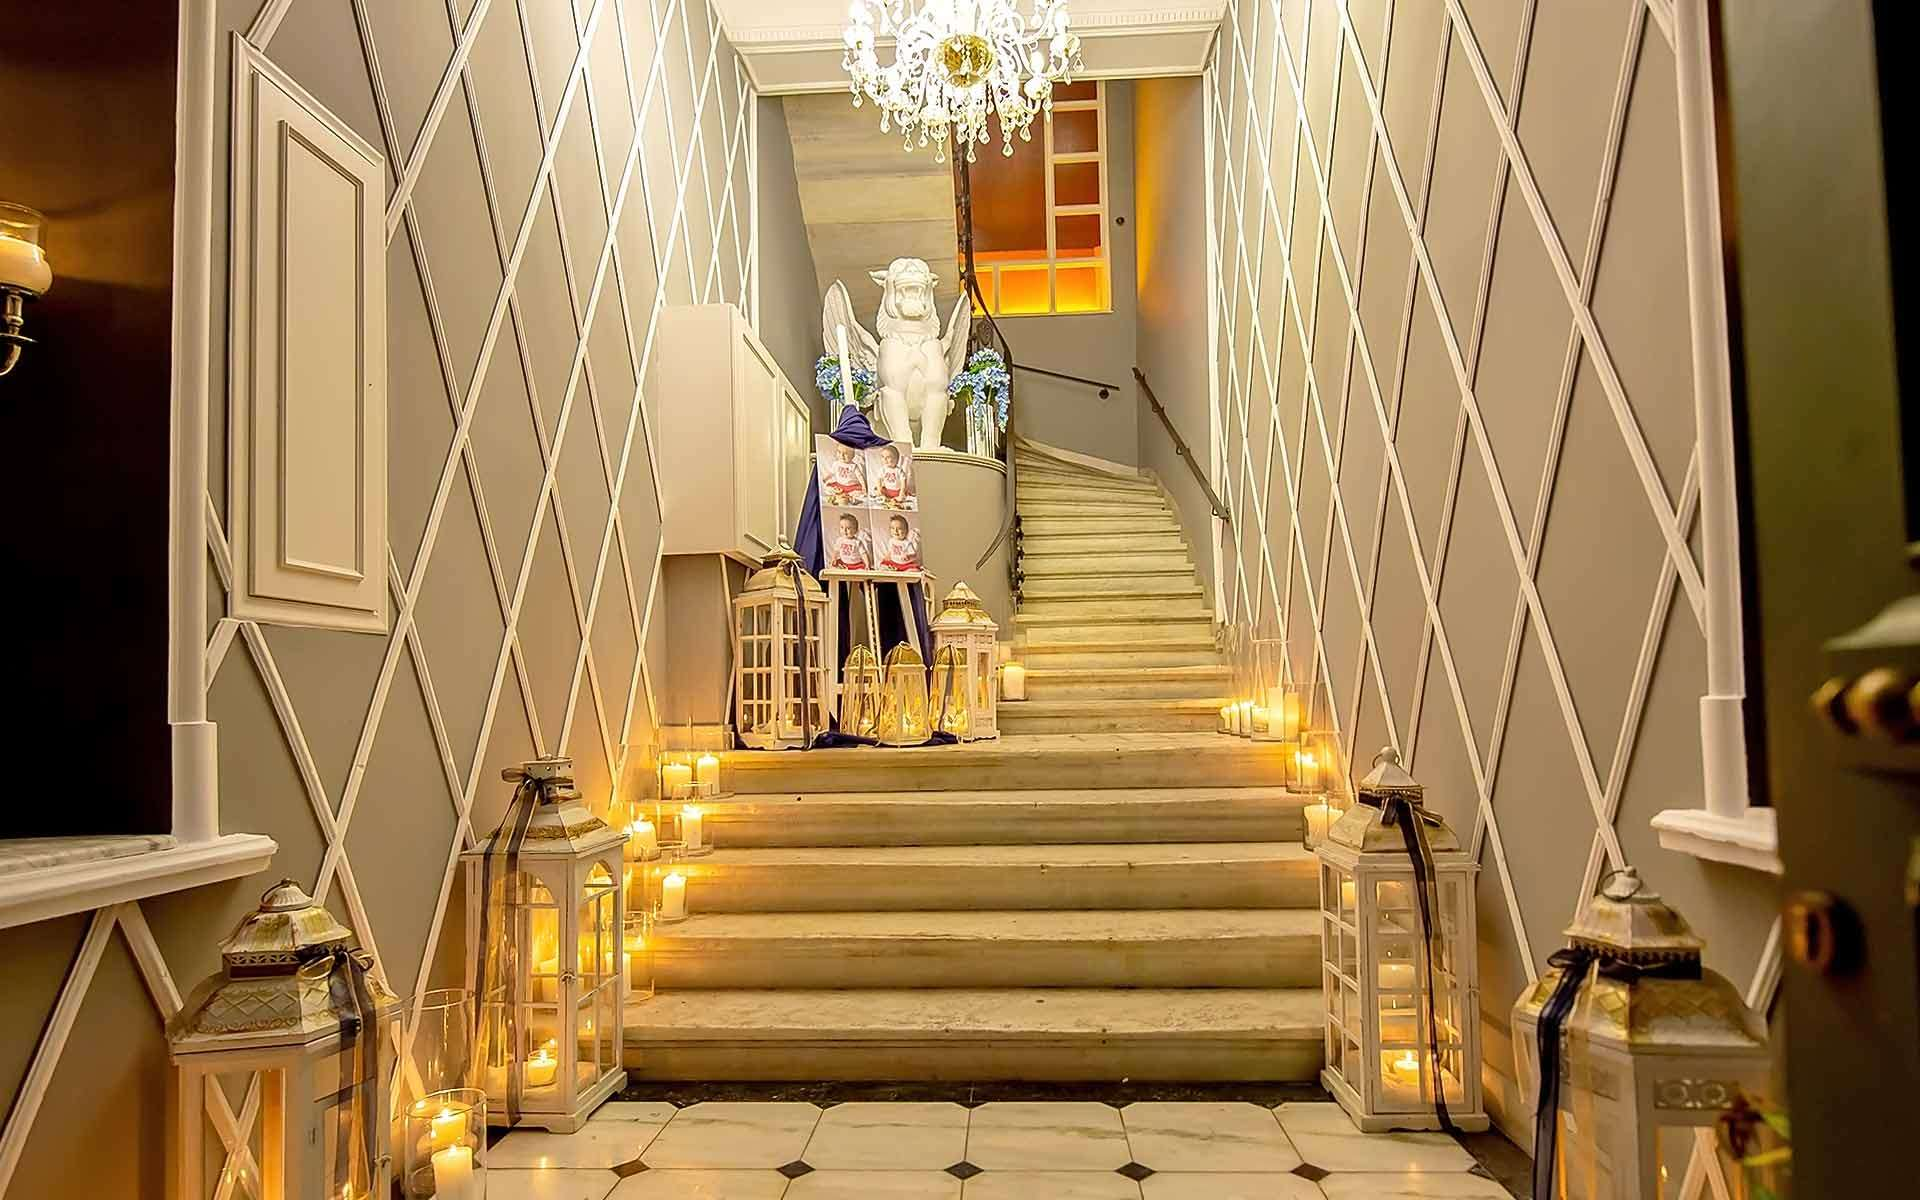 Staircase-entrance-baby-boy-baptism-decorating